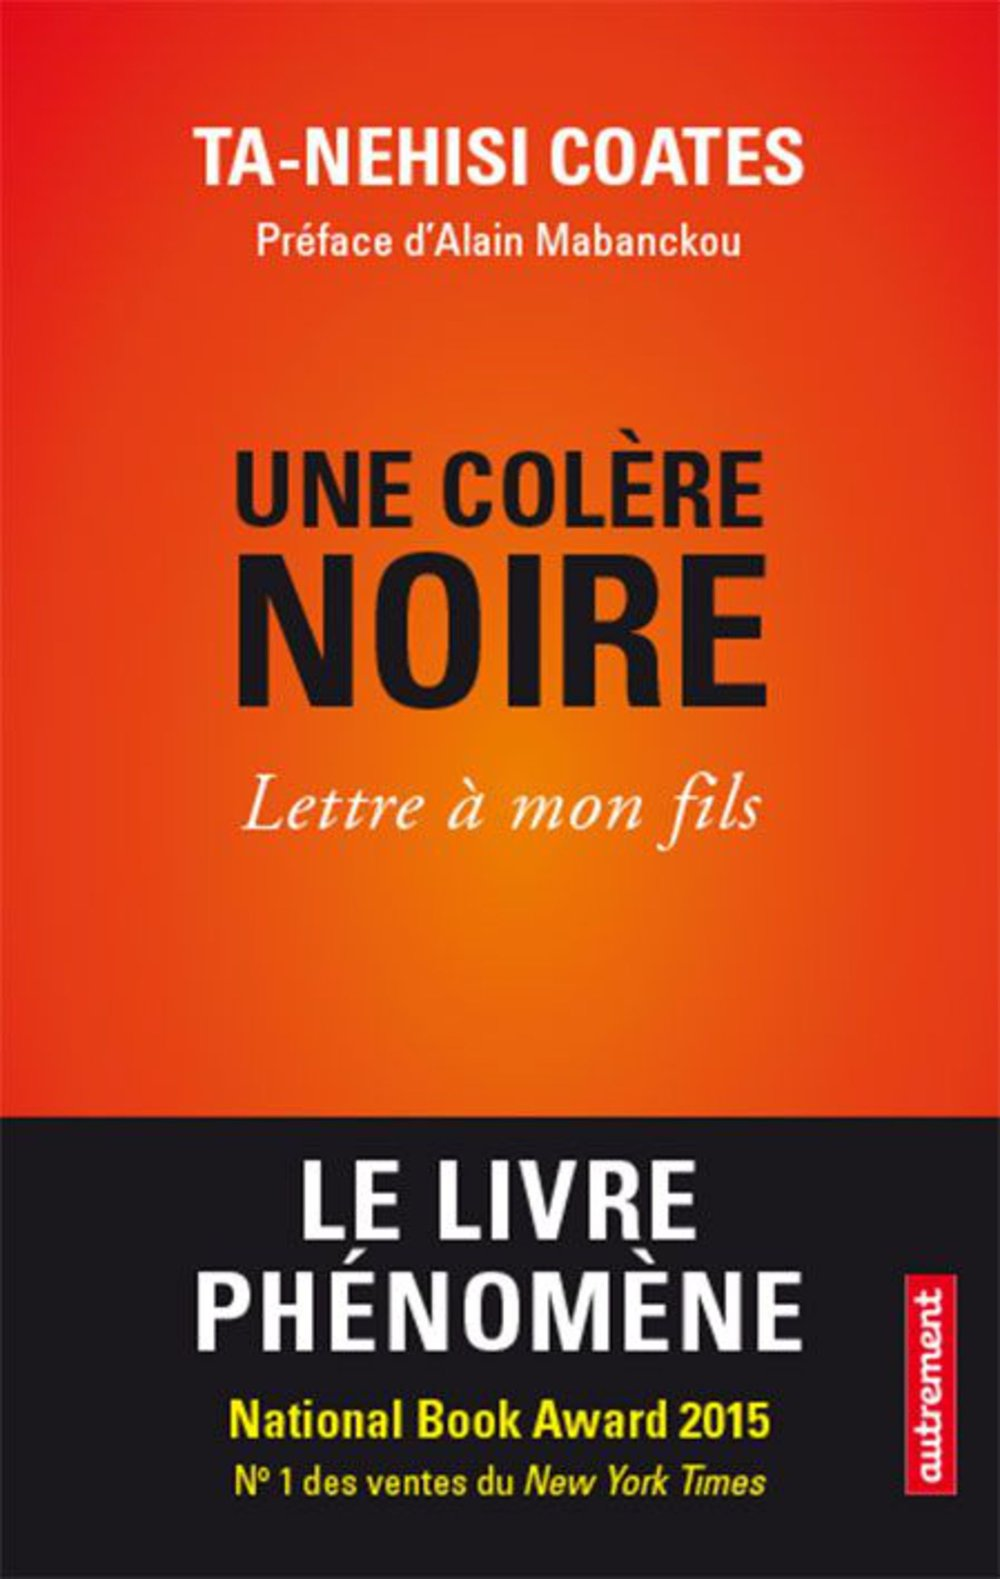 une-colere-noire-between-the-world-and-me-par-ta-nehisi-coates_5499205.jpg